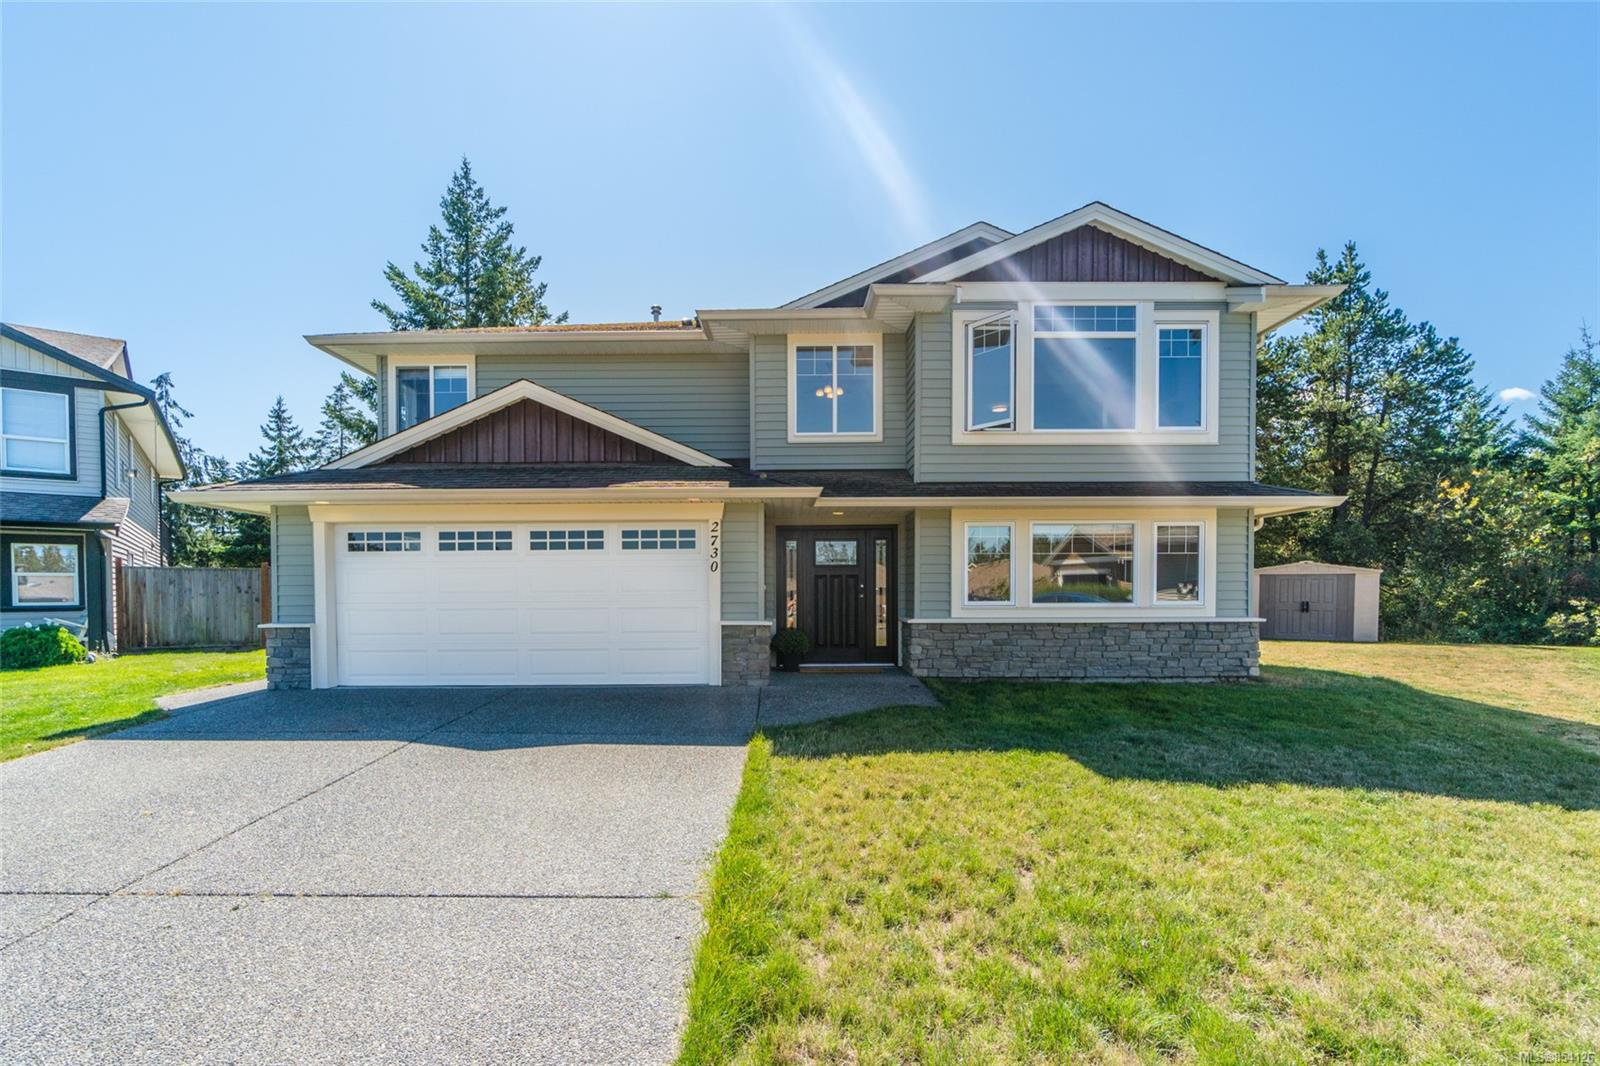 Main Photo: 2730 Majestic Pl in : Na Diver Lake House for sale (Nanaimo)  : MLS®# 854126